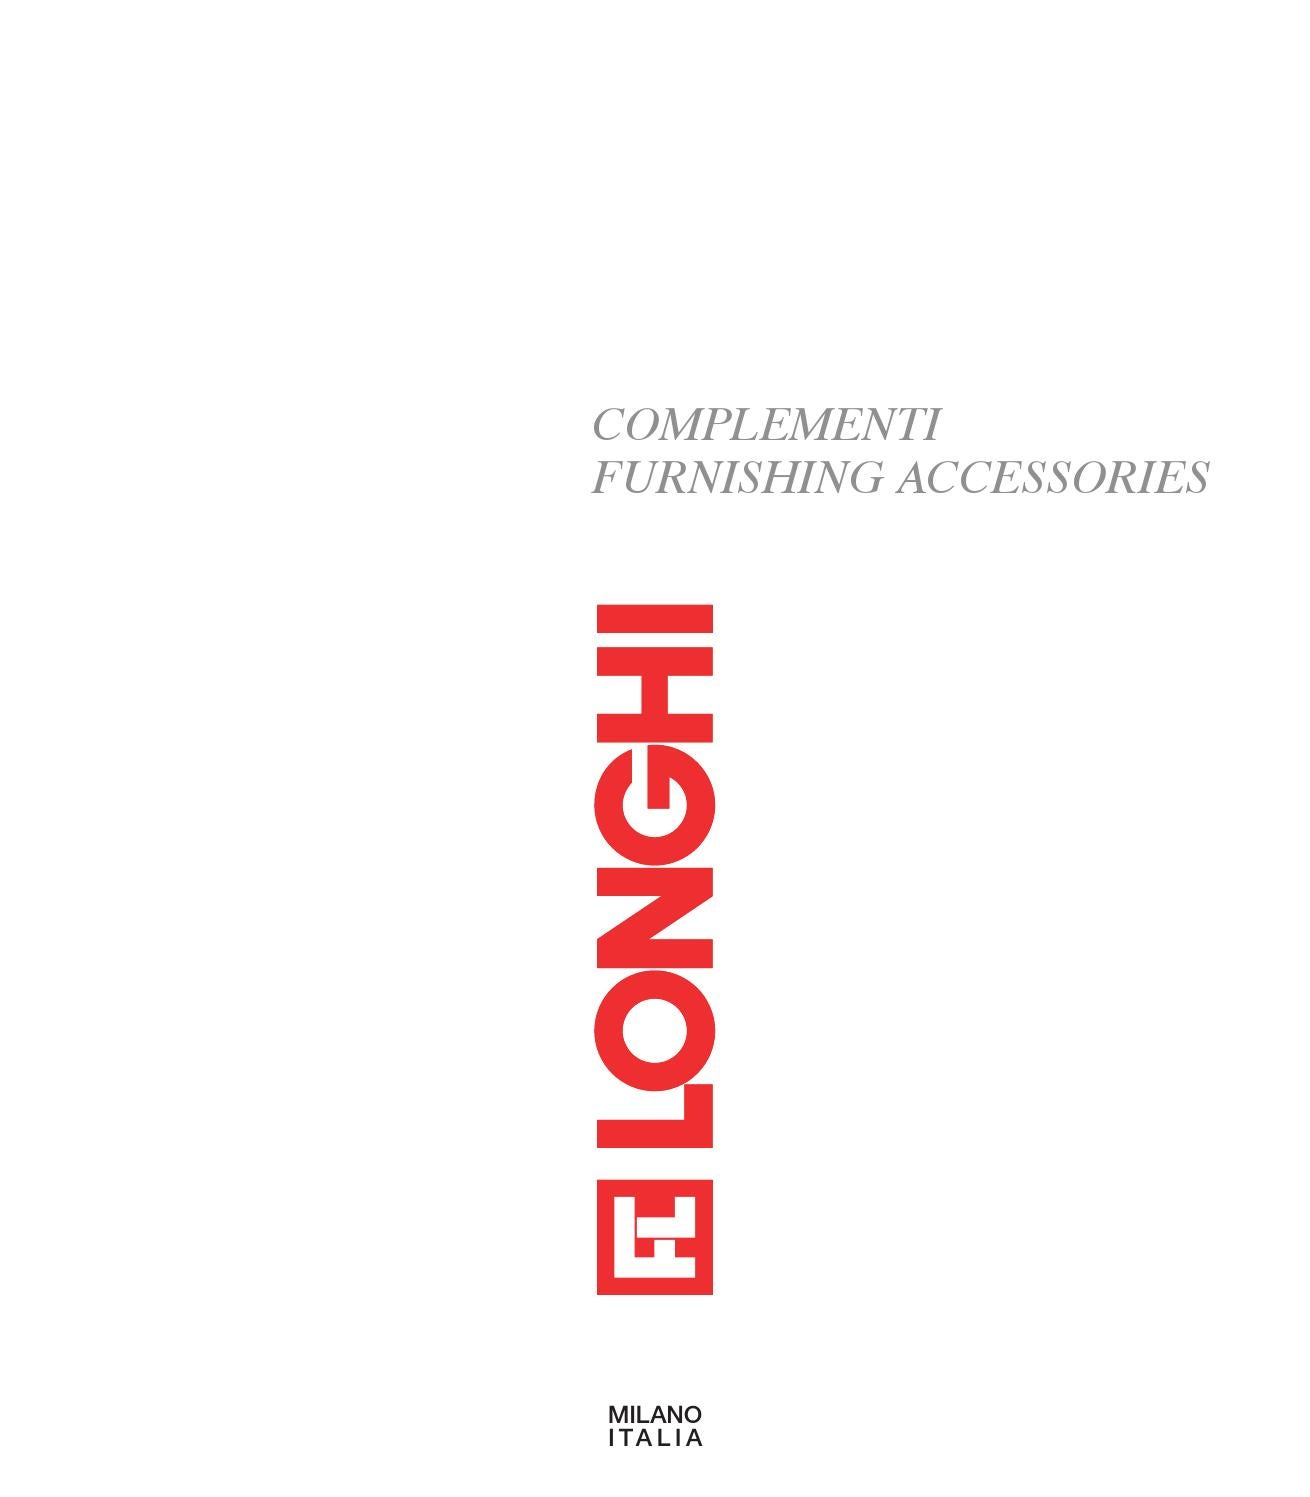 longhi complementi by verbavolant issuu